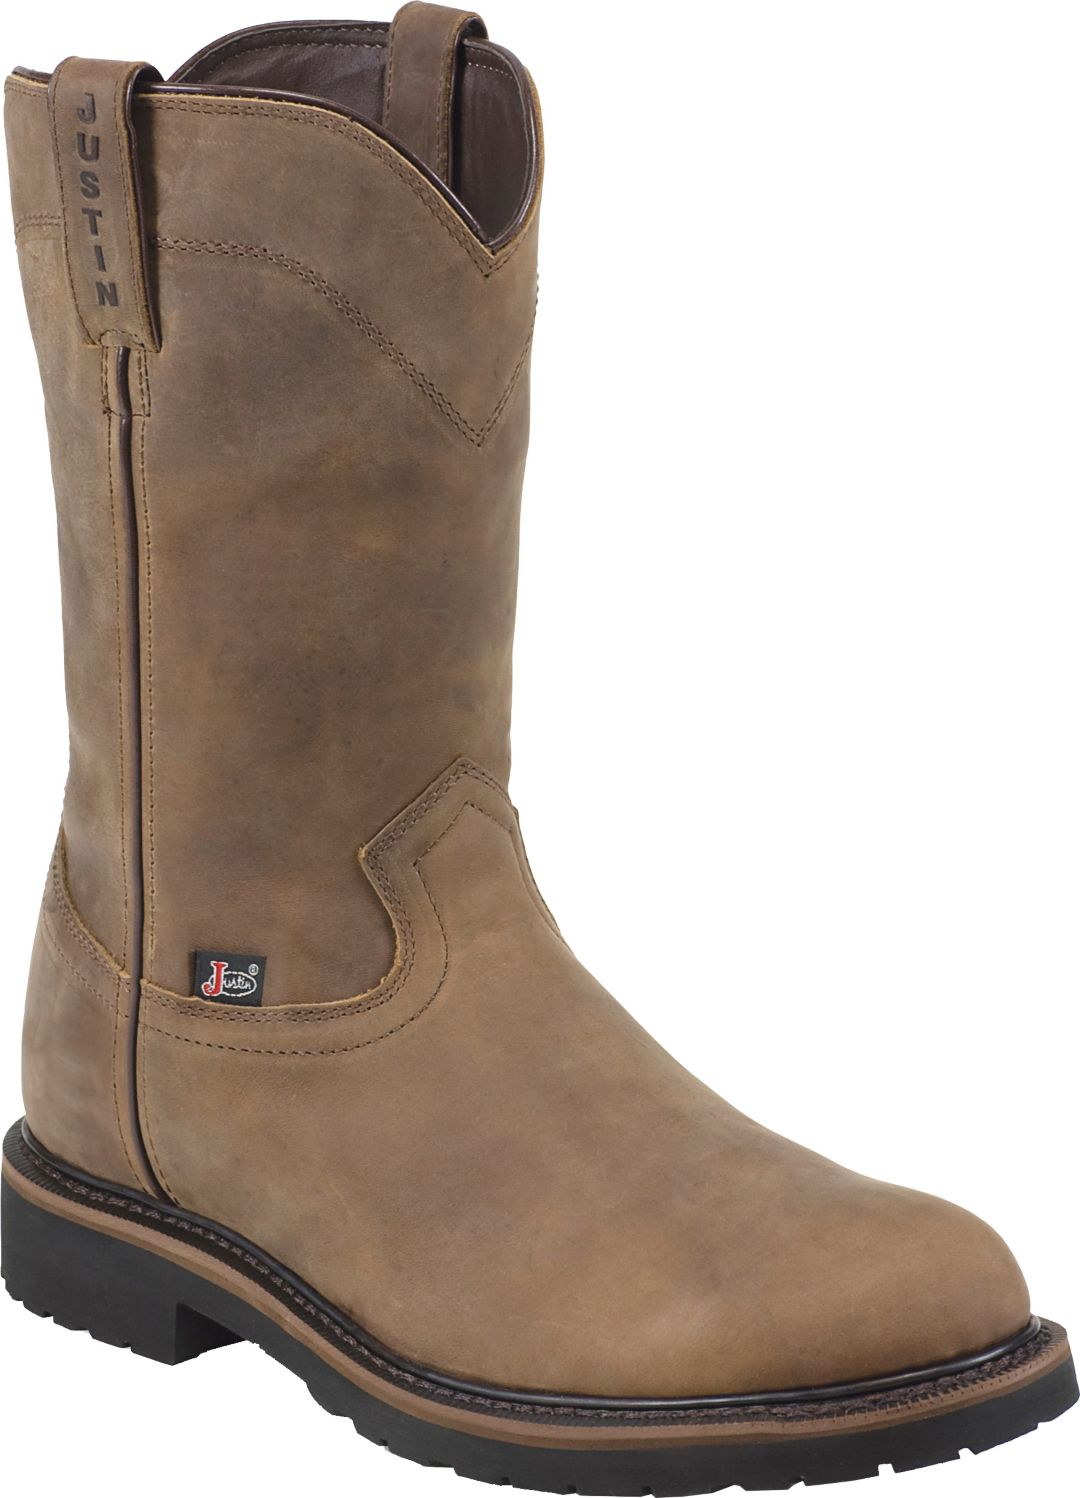 8838a83c4d6 Justin Men's Drywall Pull-On Steel Toe EH Work Boots